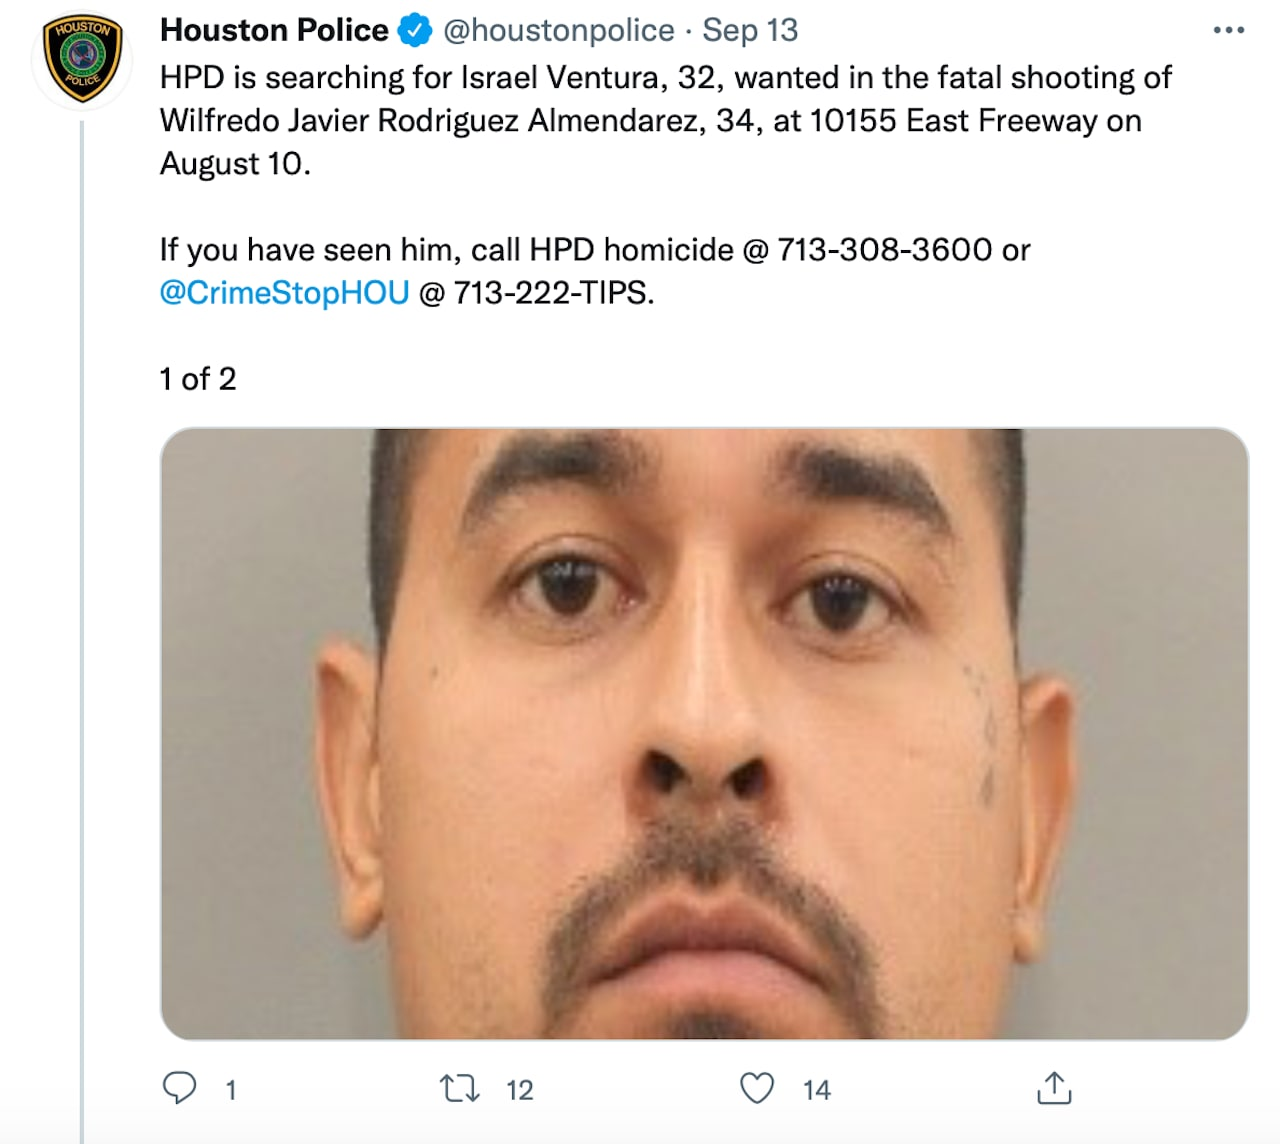 Israel Ventura is wanted for the shooting homicide of a man (PHOTOS)